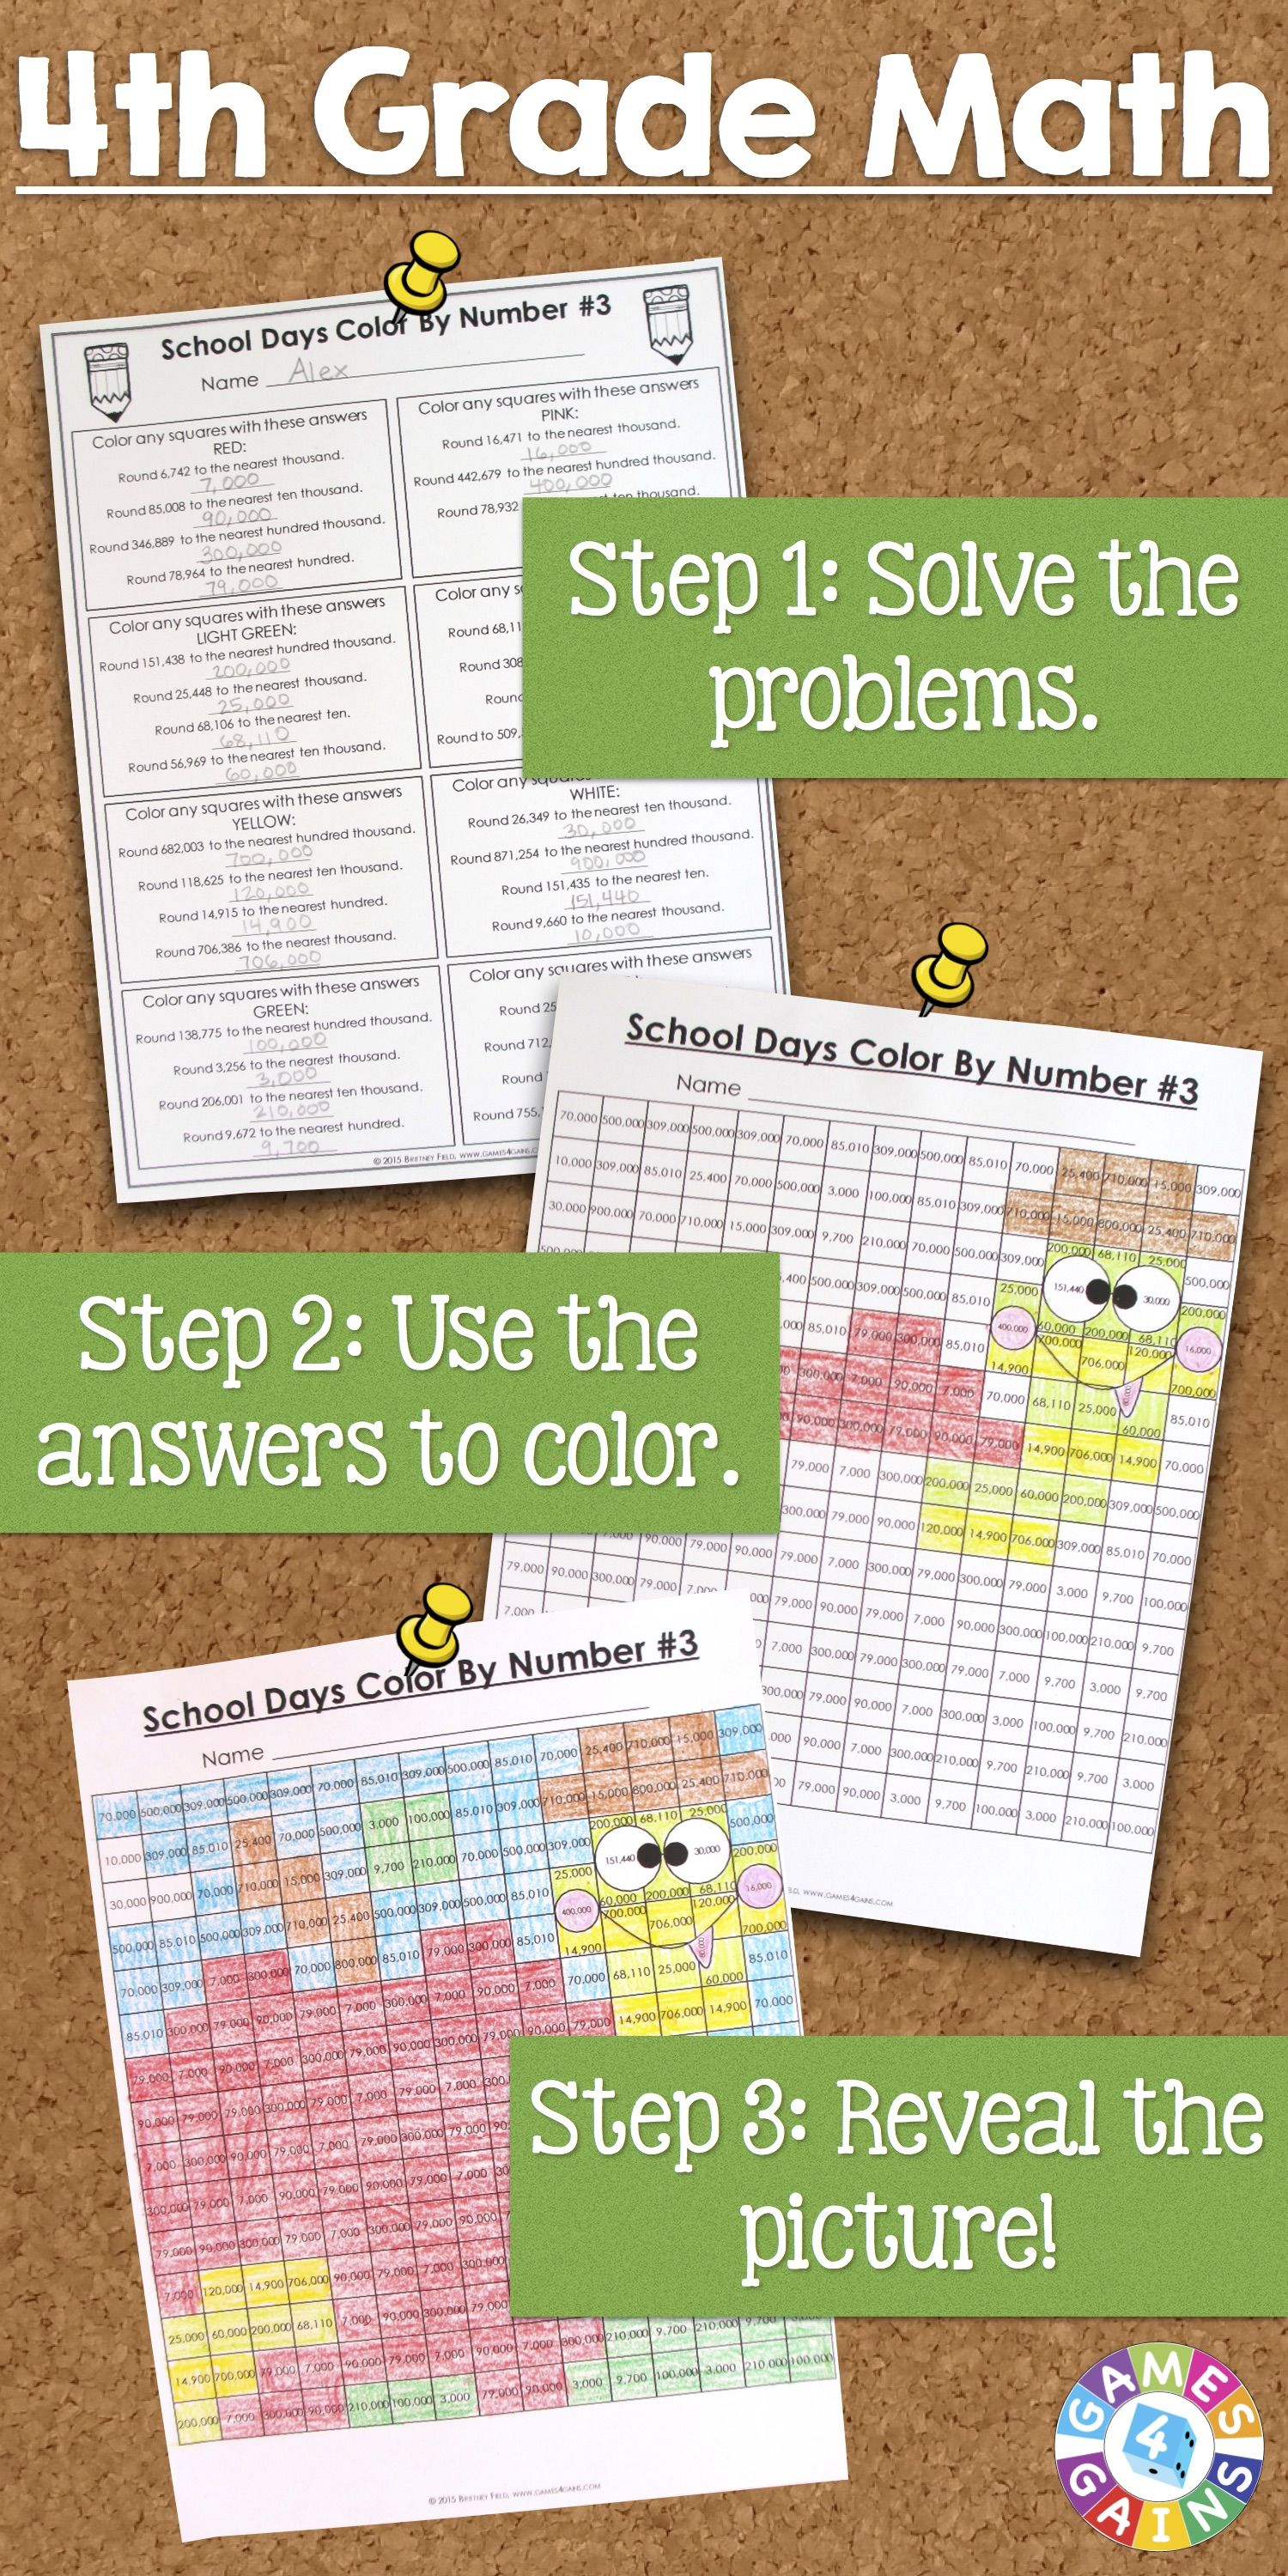 4th Grade Place Value Review | Starting 5th Grade Back to School ...